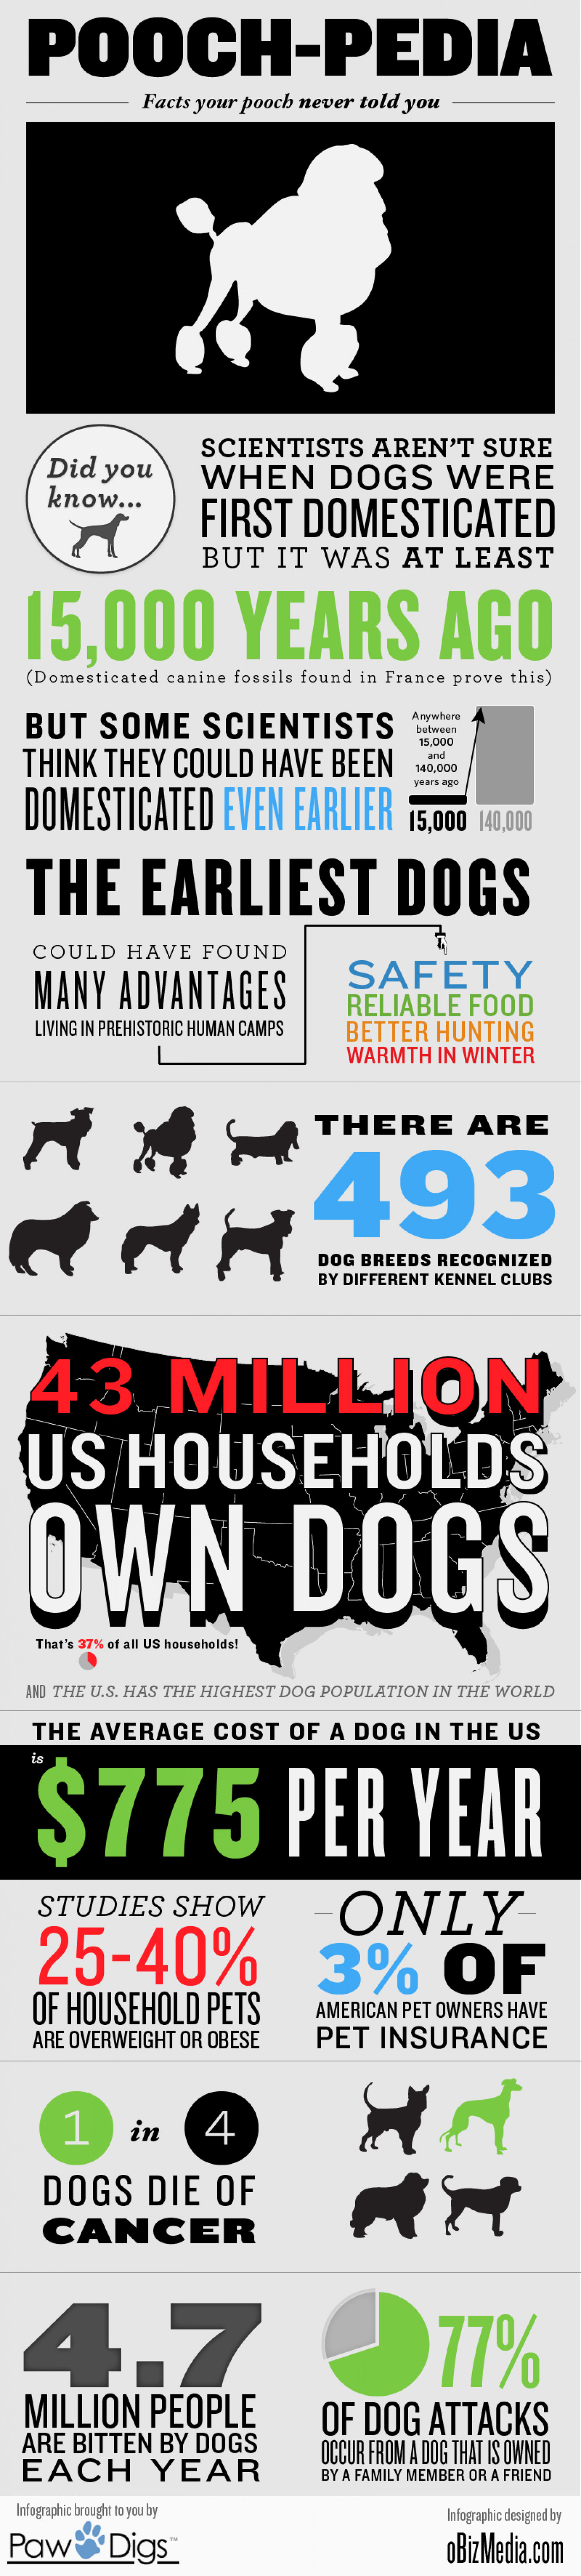 Pooch-pedia: Facts Your Pooch Never Told You Infographic